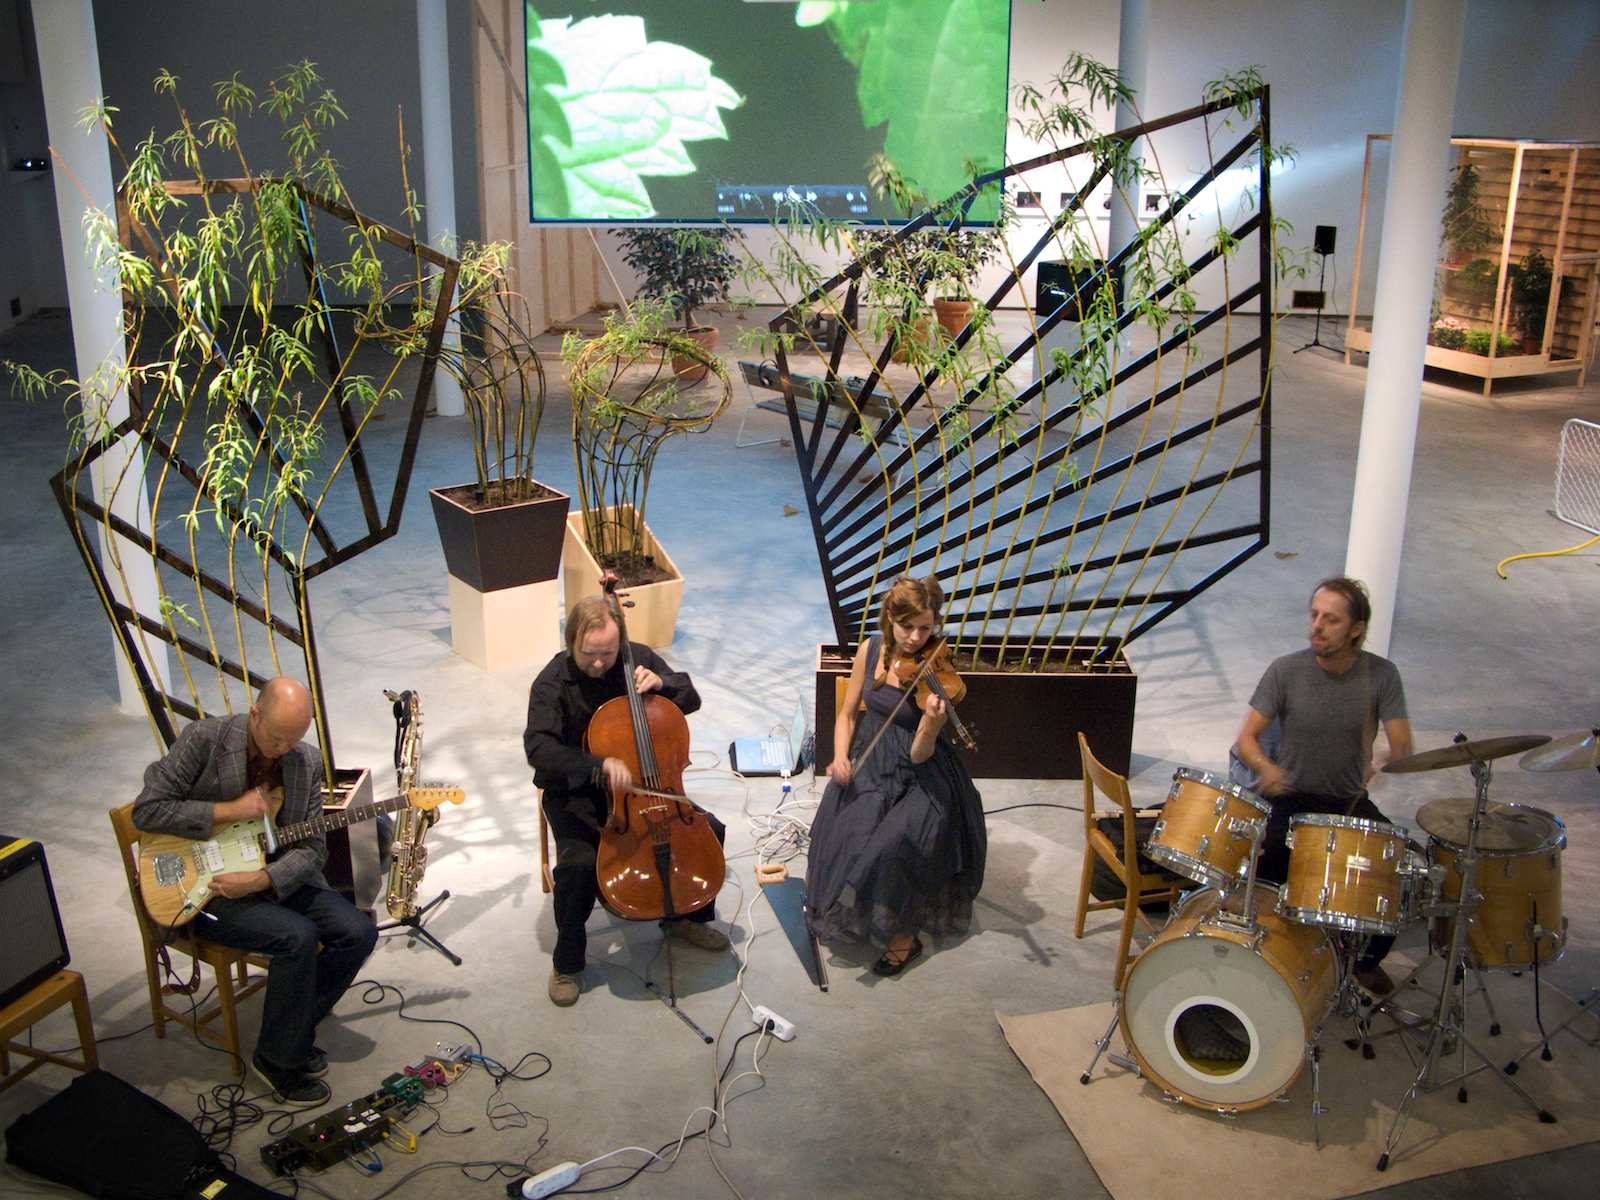 Yellow Admiral (Gul Amiral), 2010, installation, Salix + espaliers, video and musical performance Plant Drummer with the ensemble Yellow Admiral, 350 x 240 x 300 cm